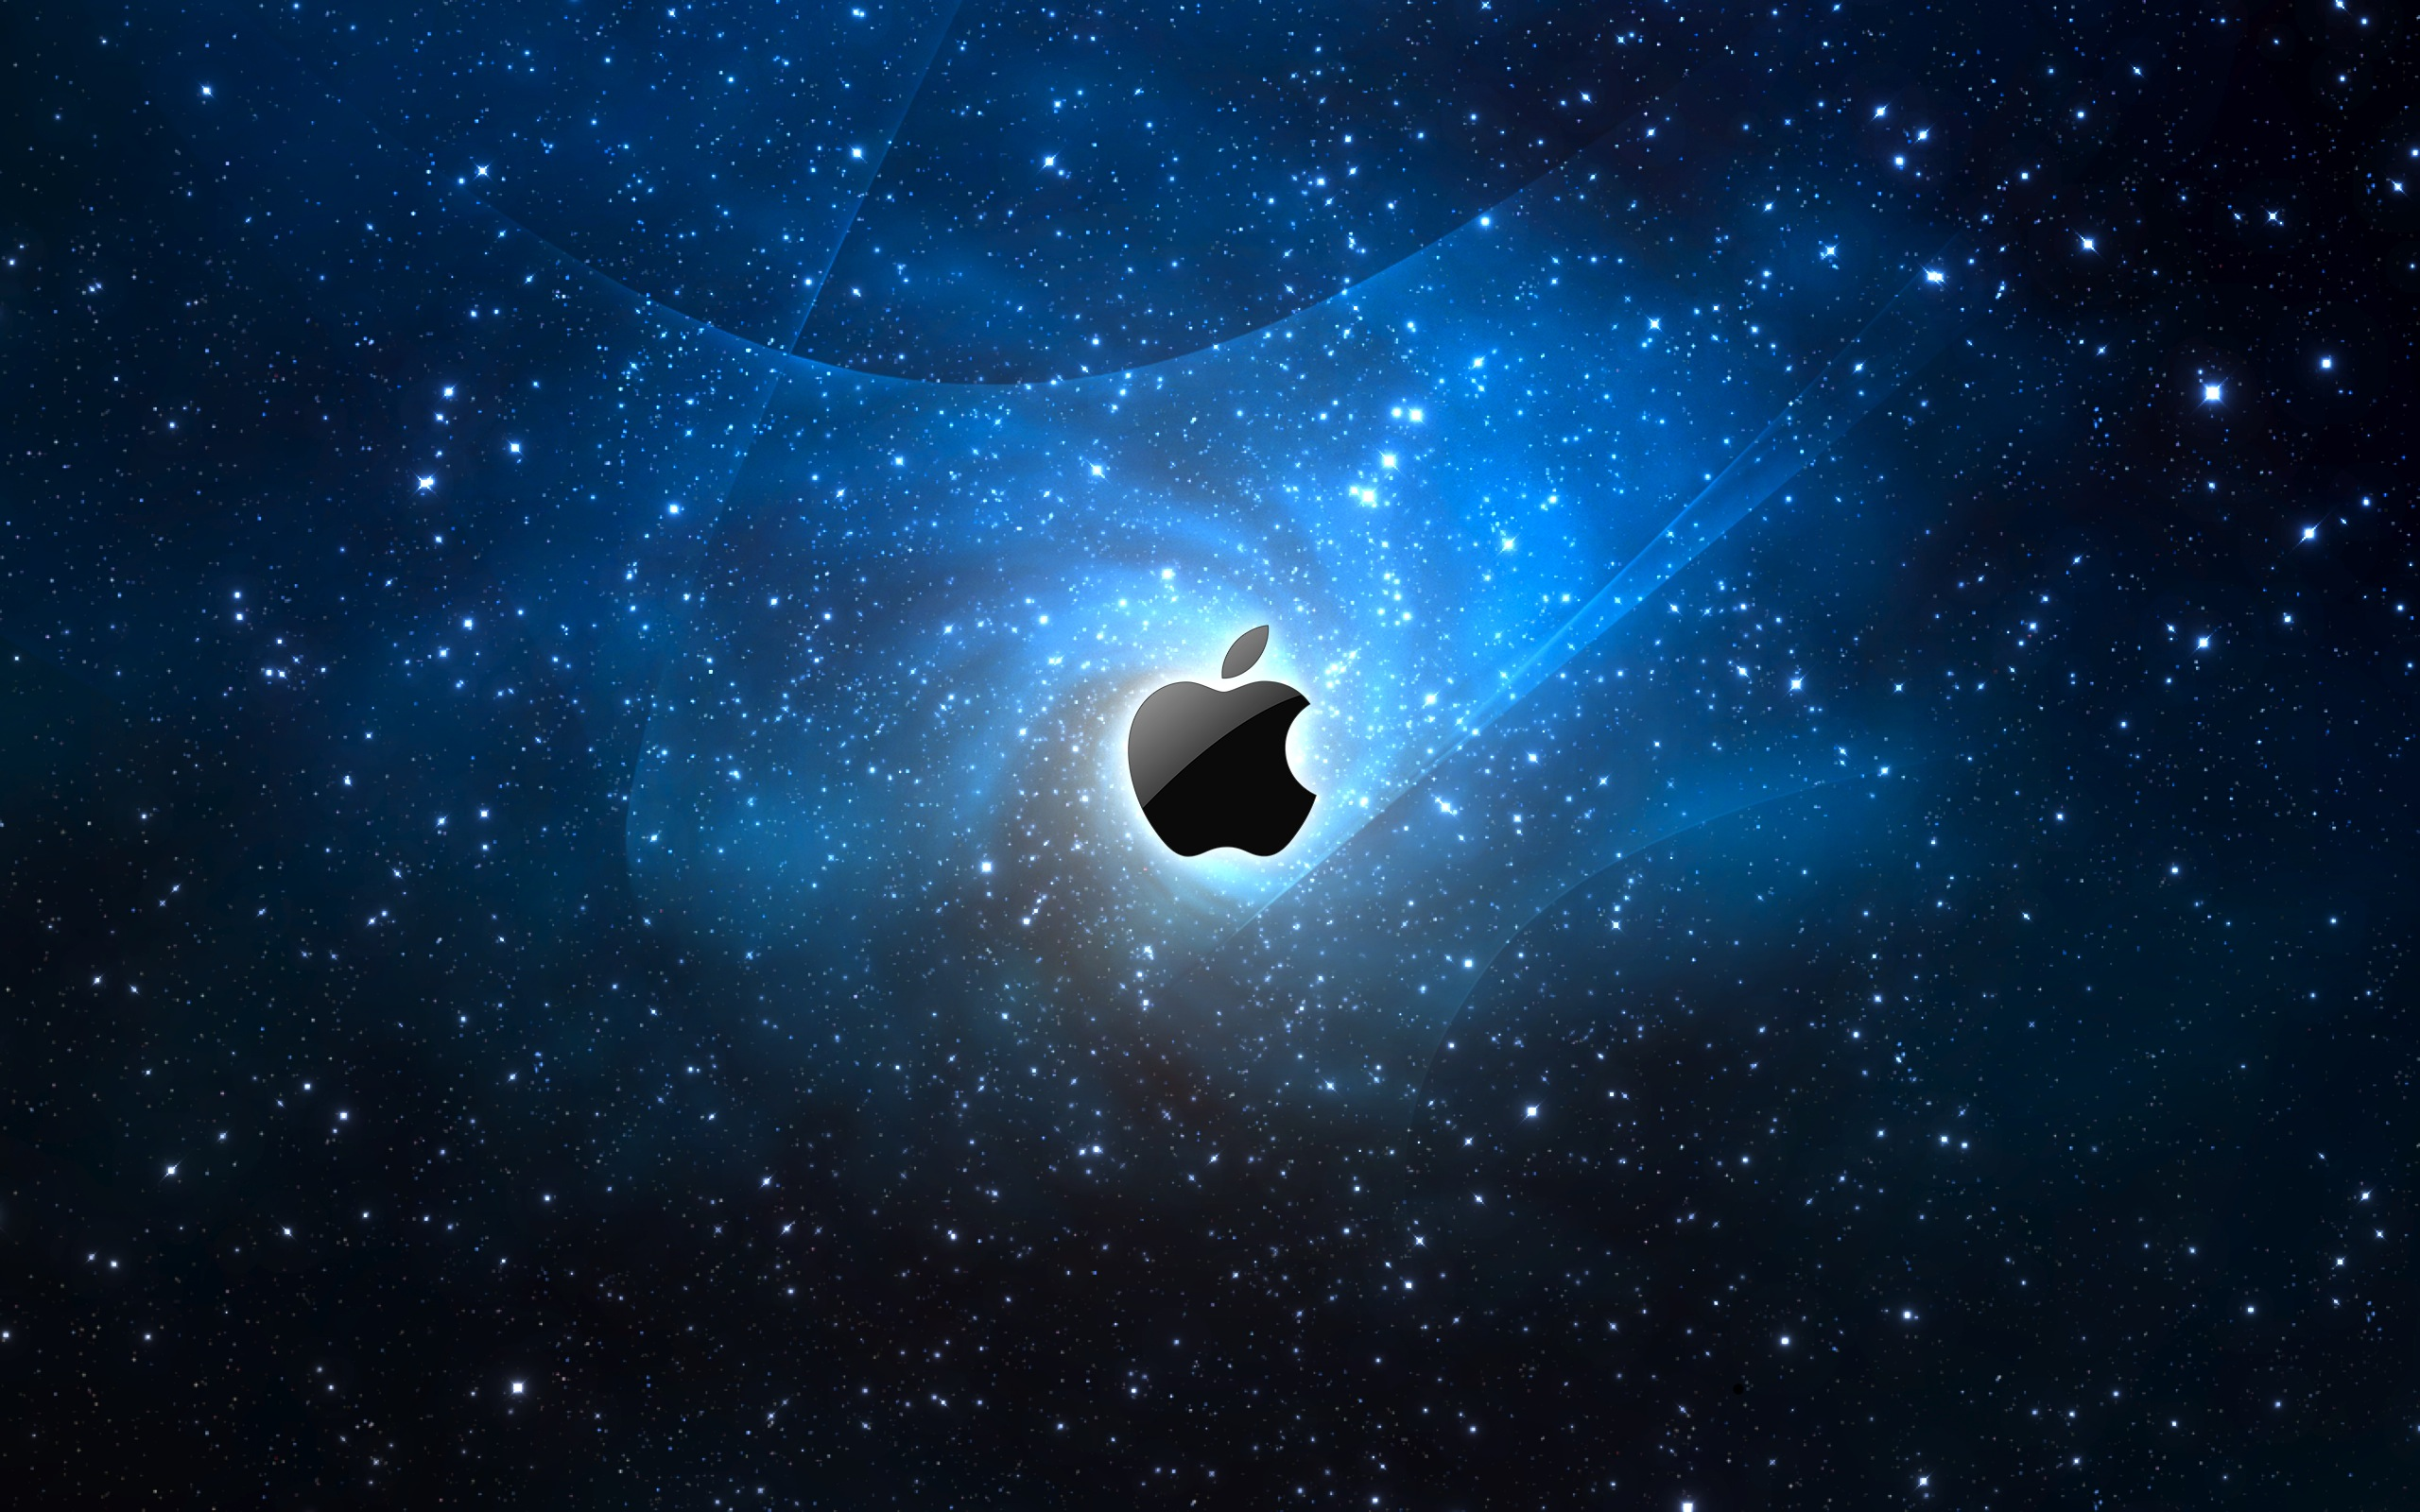 Apple Galaxy Wallpaper HD